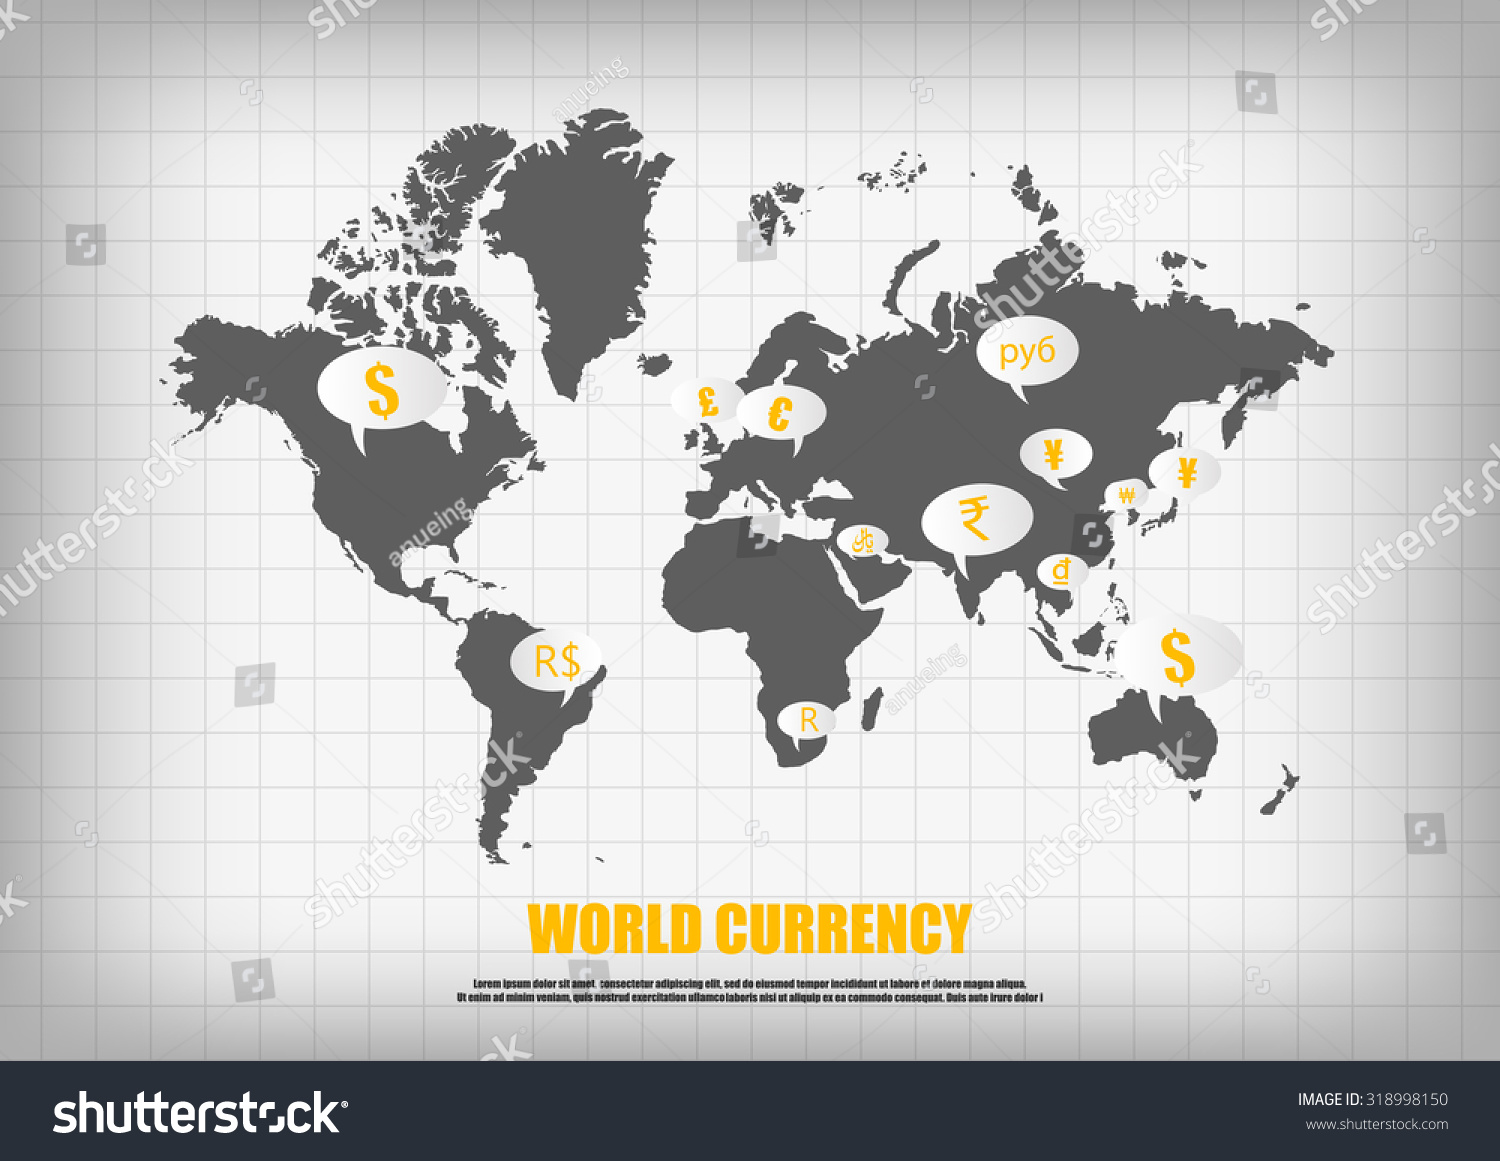 Vector world map currency bubble quotes stock vector 318998150 vector world map and currency in bubble quotes for each country gumiabroncs Images